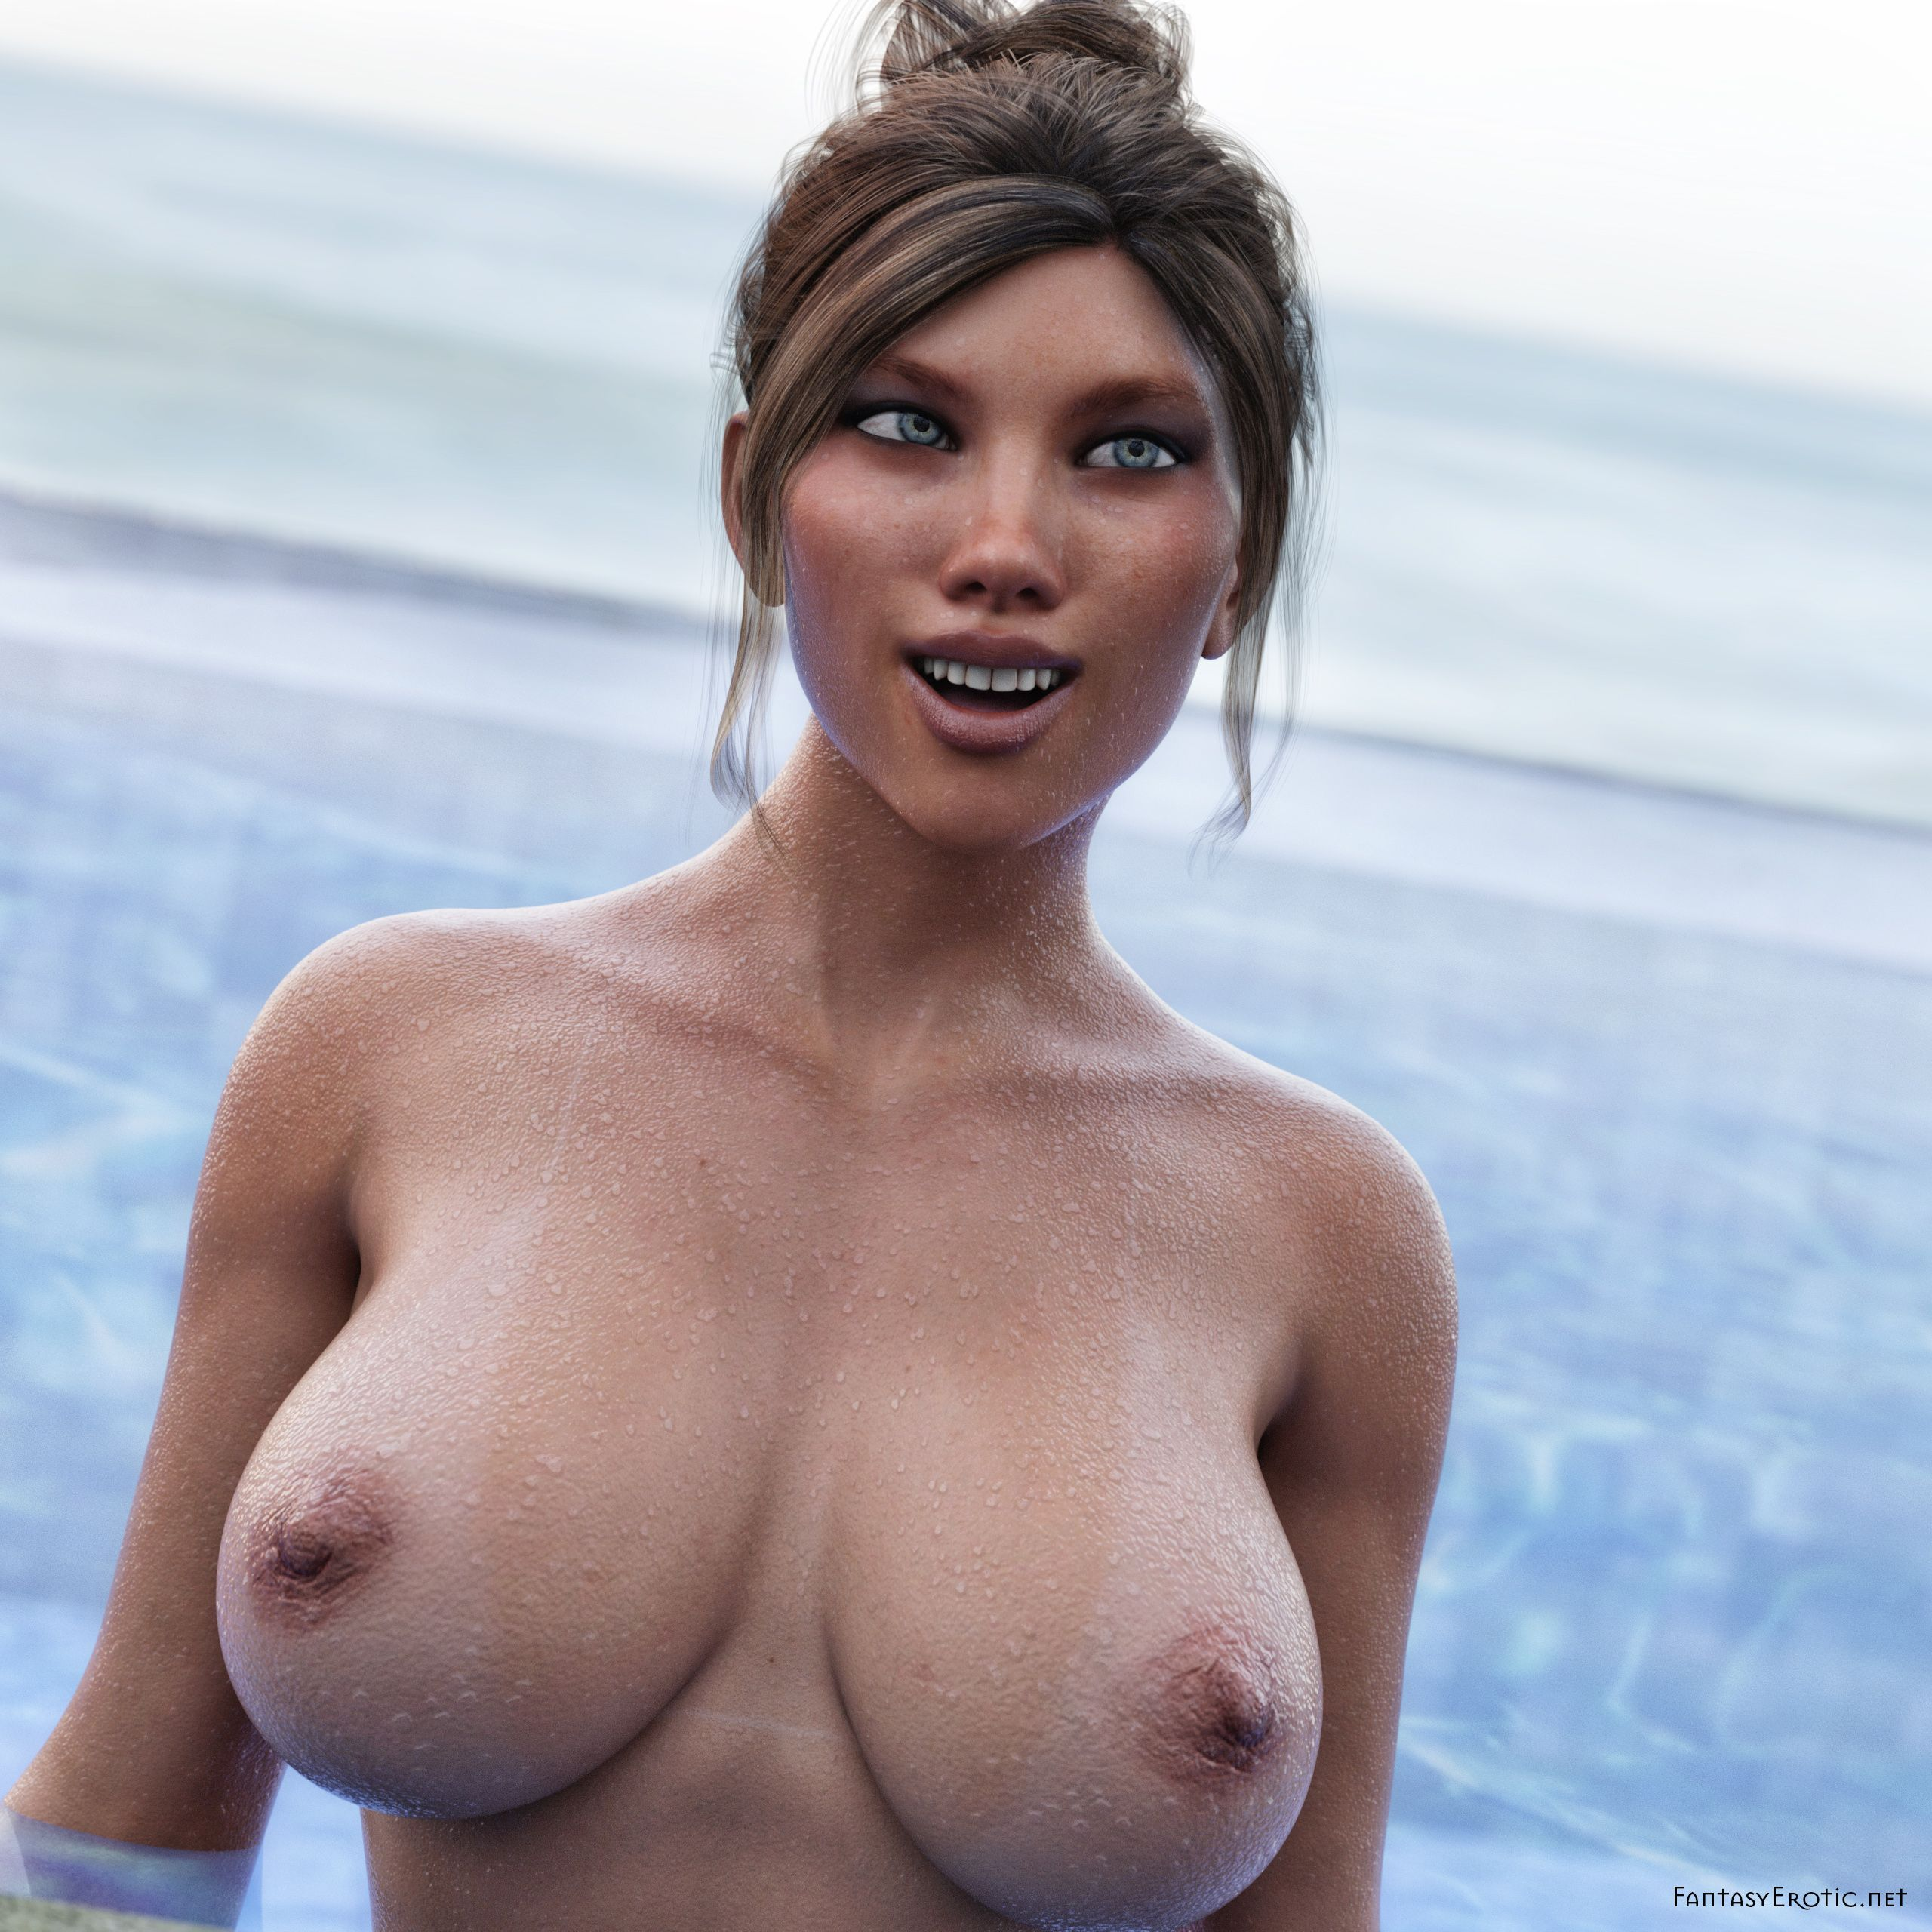 Sally shows us her big wet breasts with tan lines